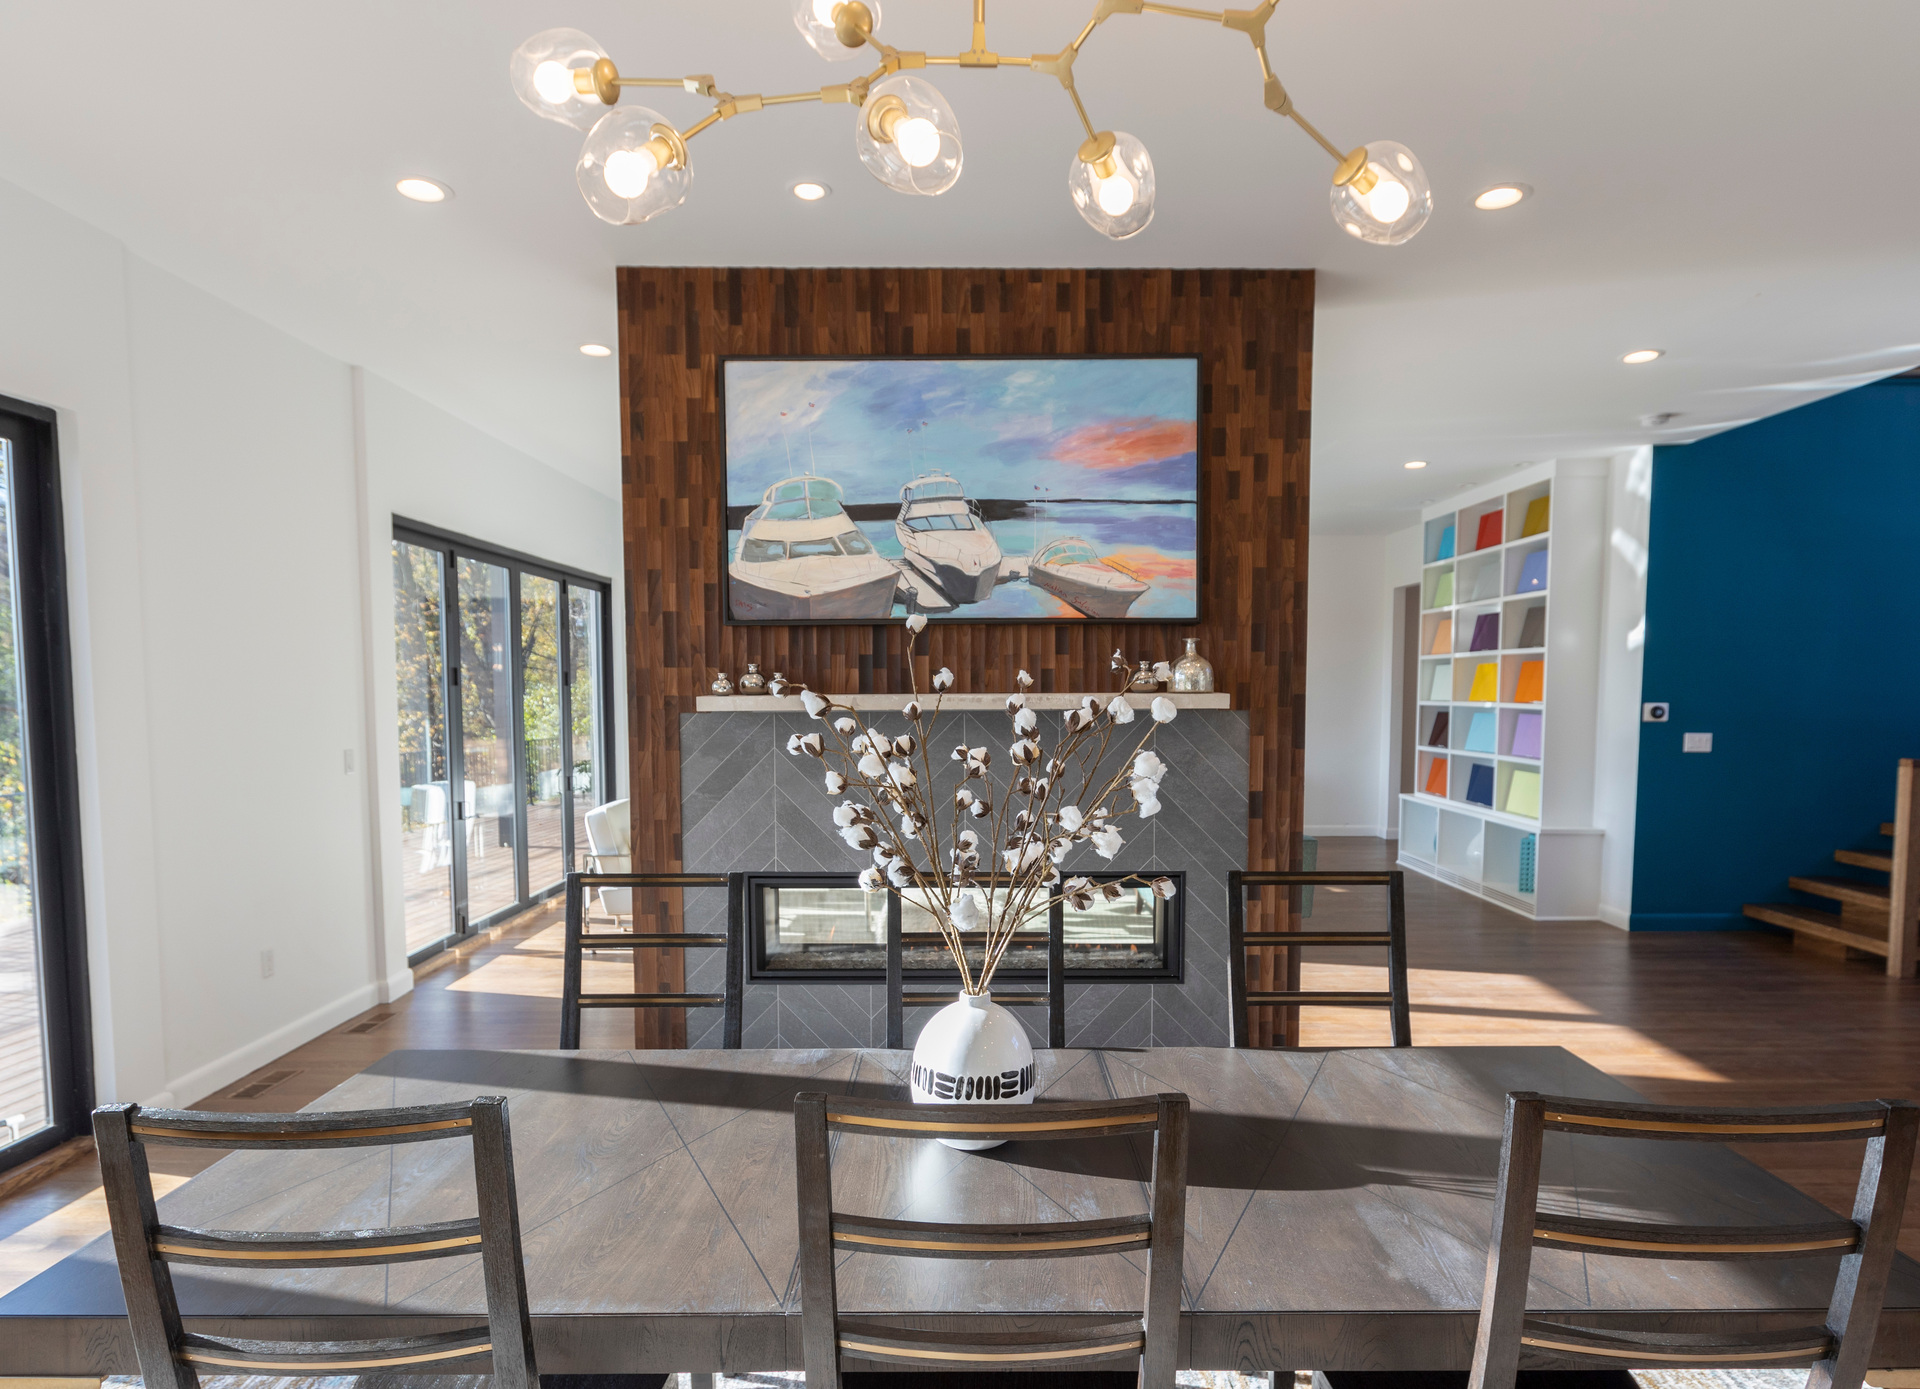 Wood Accent wall in this private residence is perfect for the fireplace partition wall.